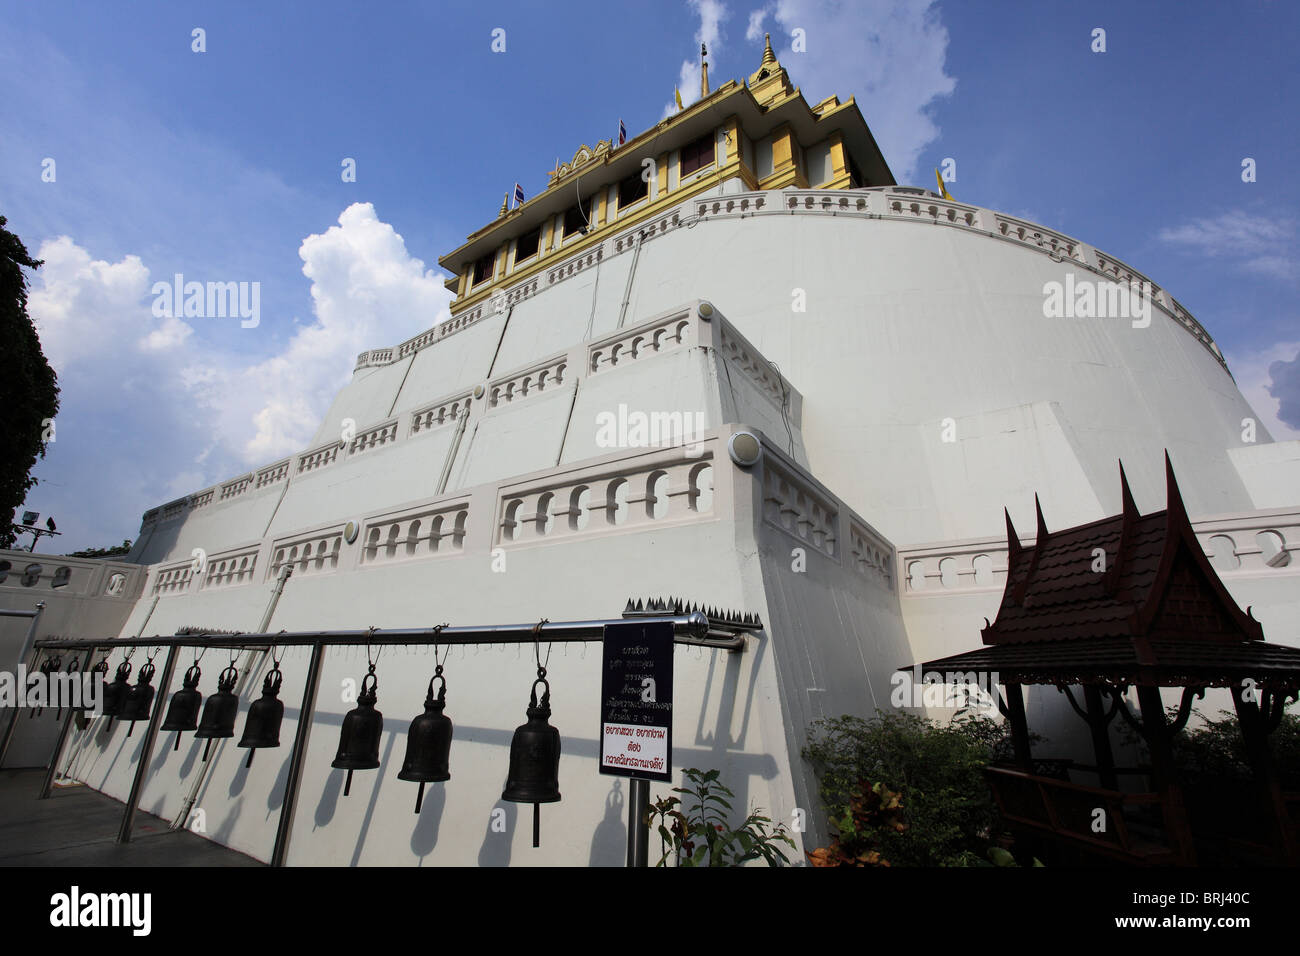 Wat Saket in bangkok, Thailand Stock Photo